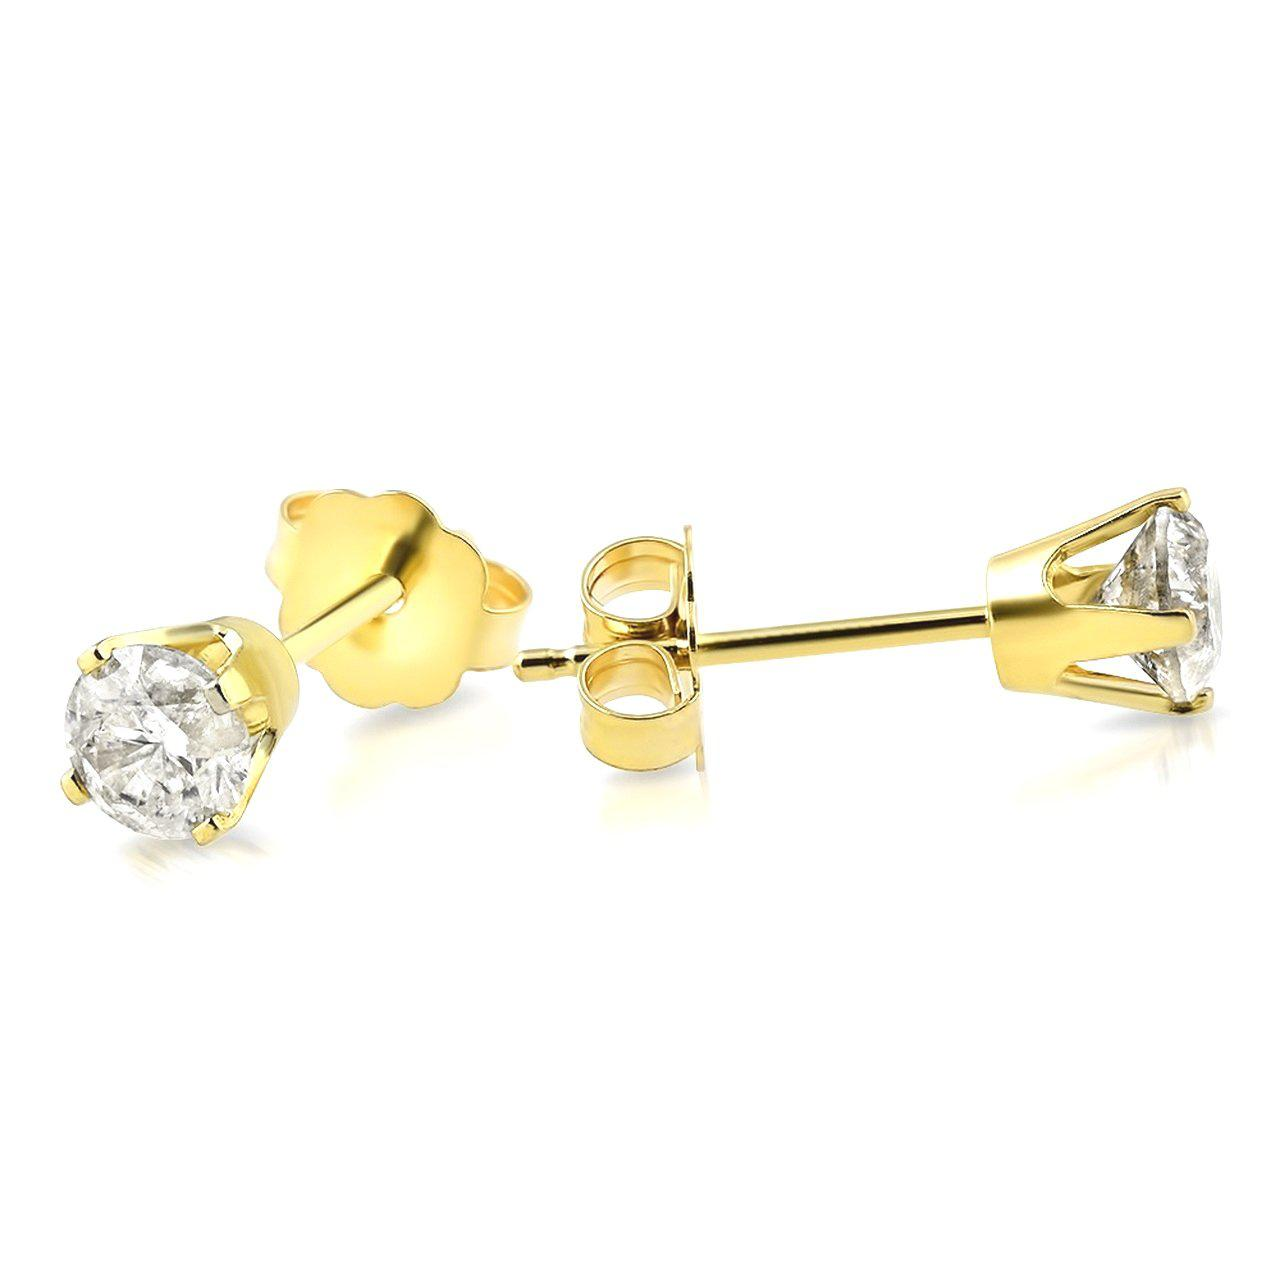 0.25 CARAT GENUINE DIAMOND STUD EARRINGS picktookshop.myshopify.com [sale] [online]